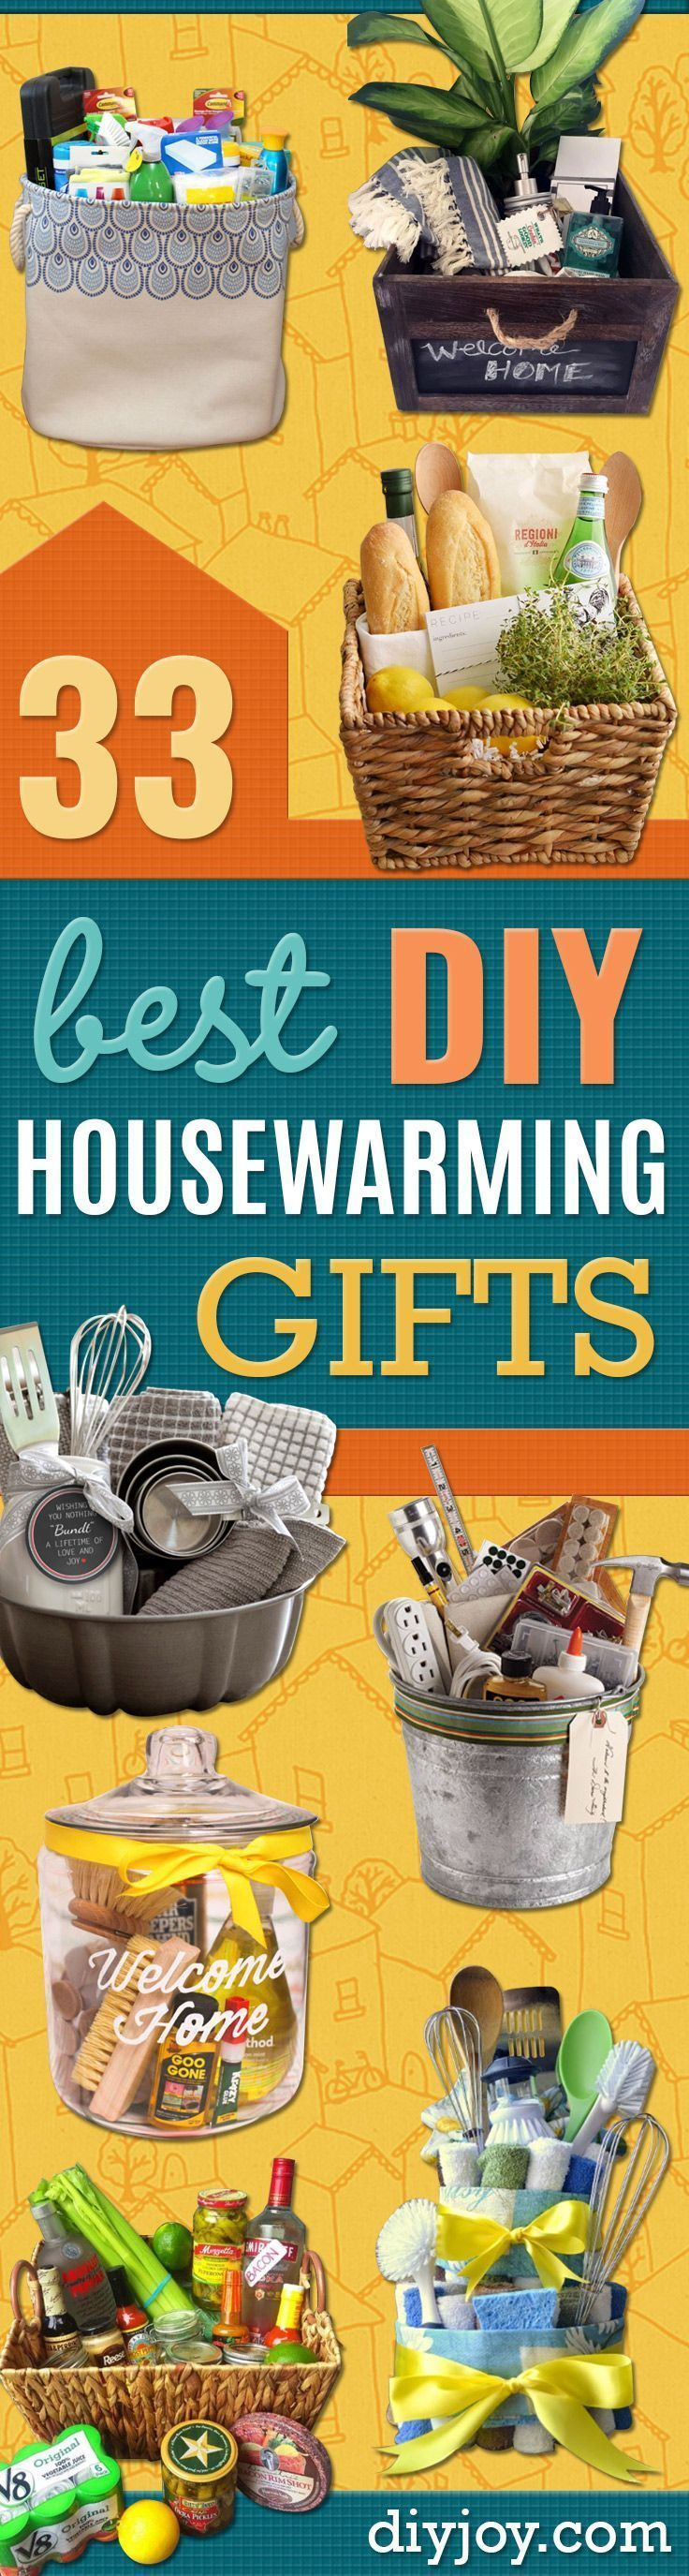 DIY Housewarming Gifts - Best Do It Yourself Gift Ideas for Friends With A New House, Home or Apartment - Creative, Cheap and Quick Crafts and DIY Ideas for Housewarming Presents - Mason Jar Gifts, Baskets, Gifts for Women and Men diyjoy.com/...